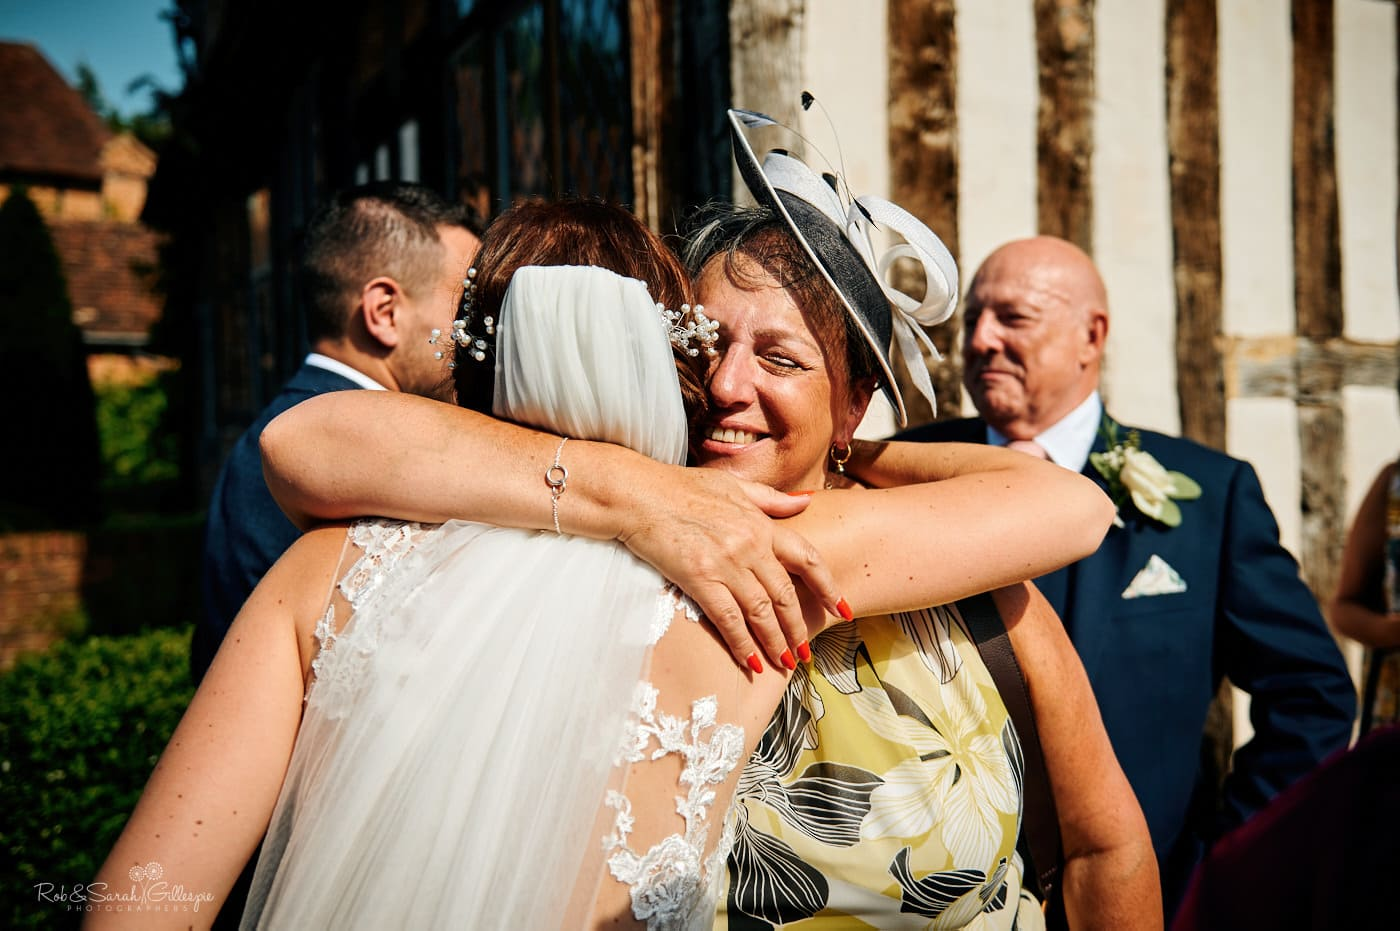 Bride hugged by guest at wedding